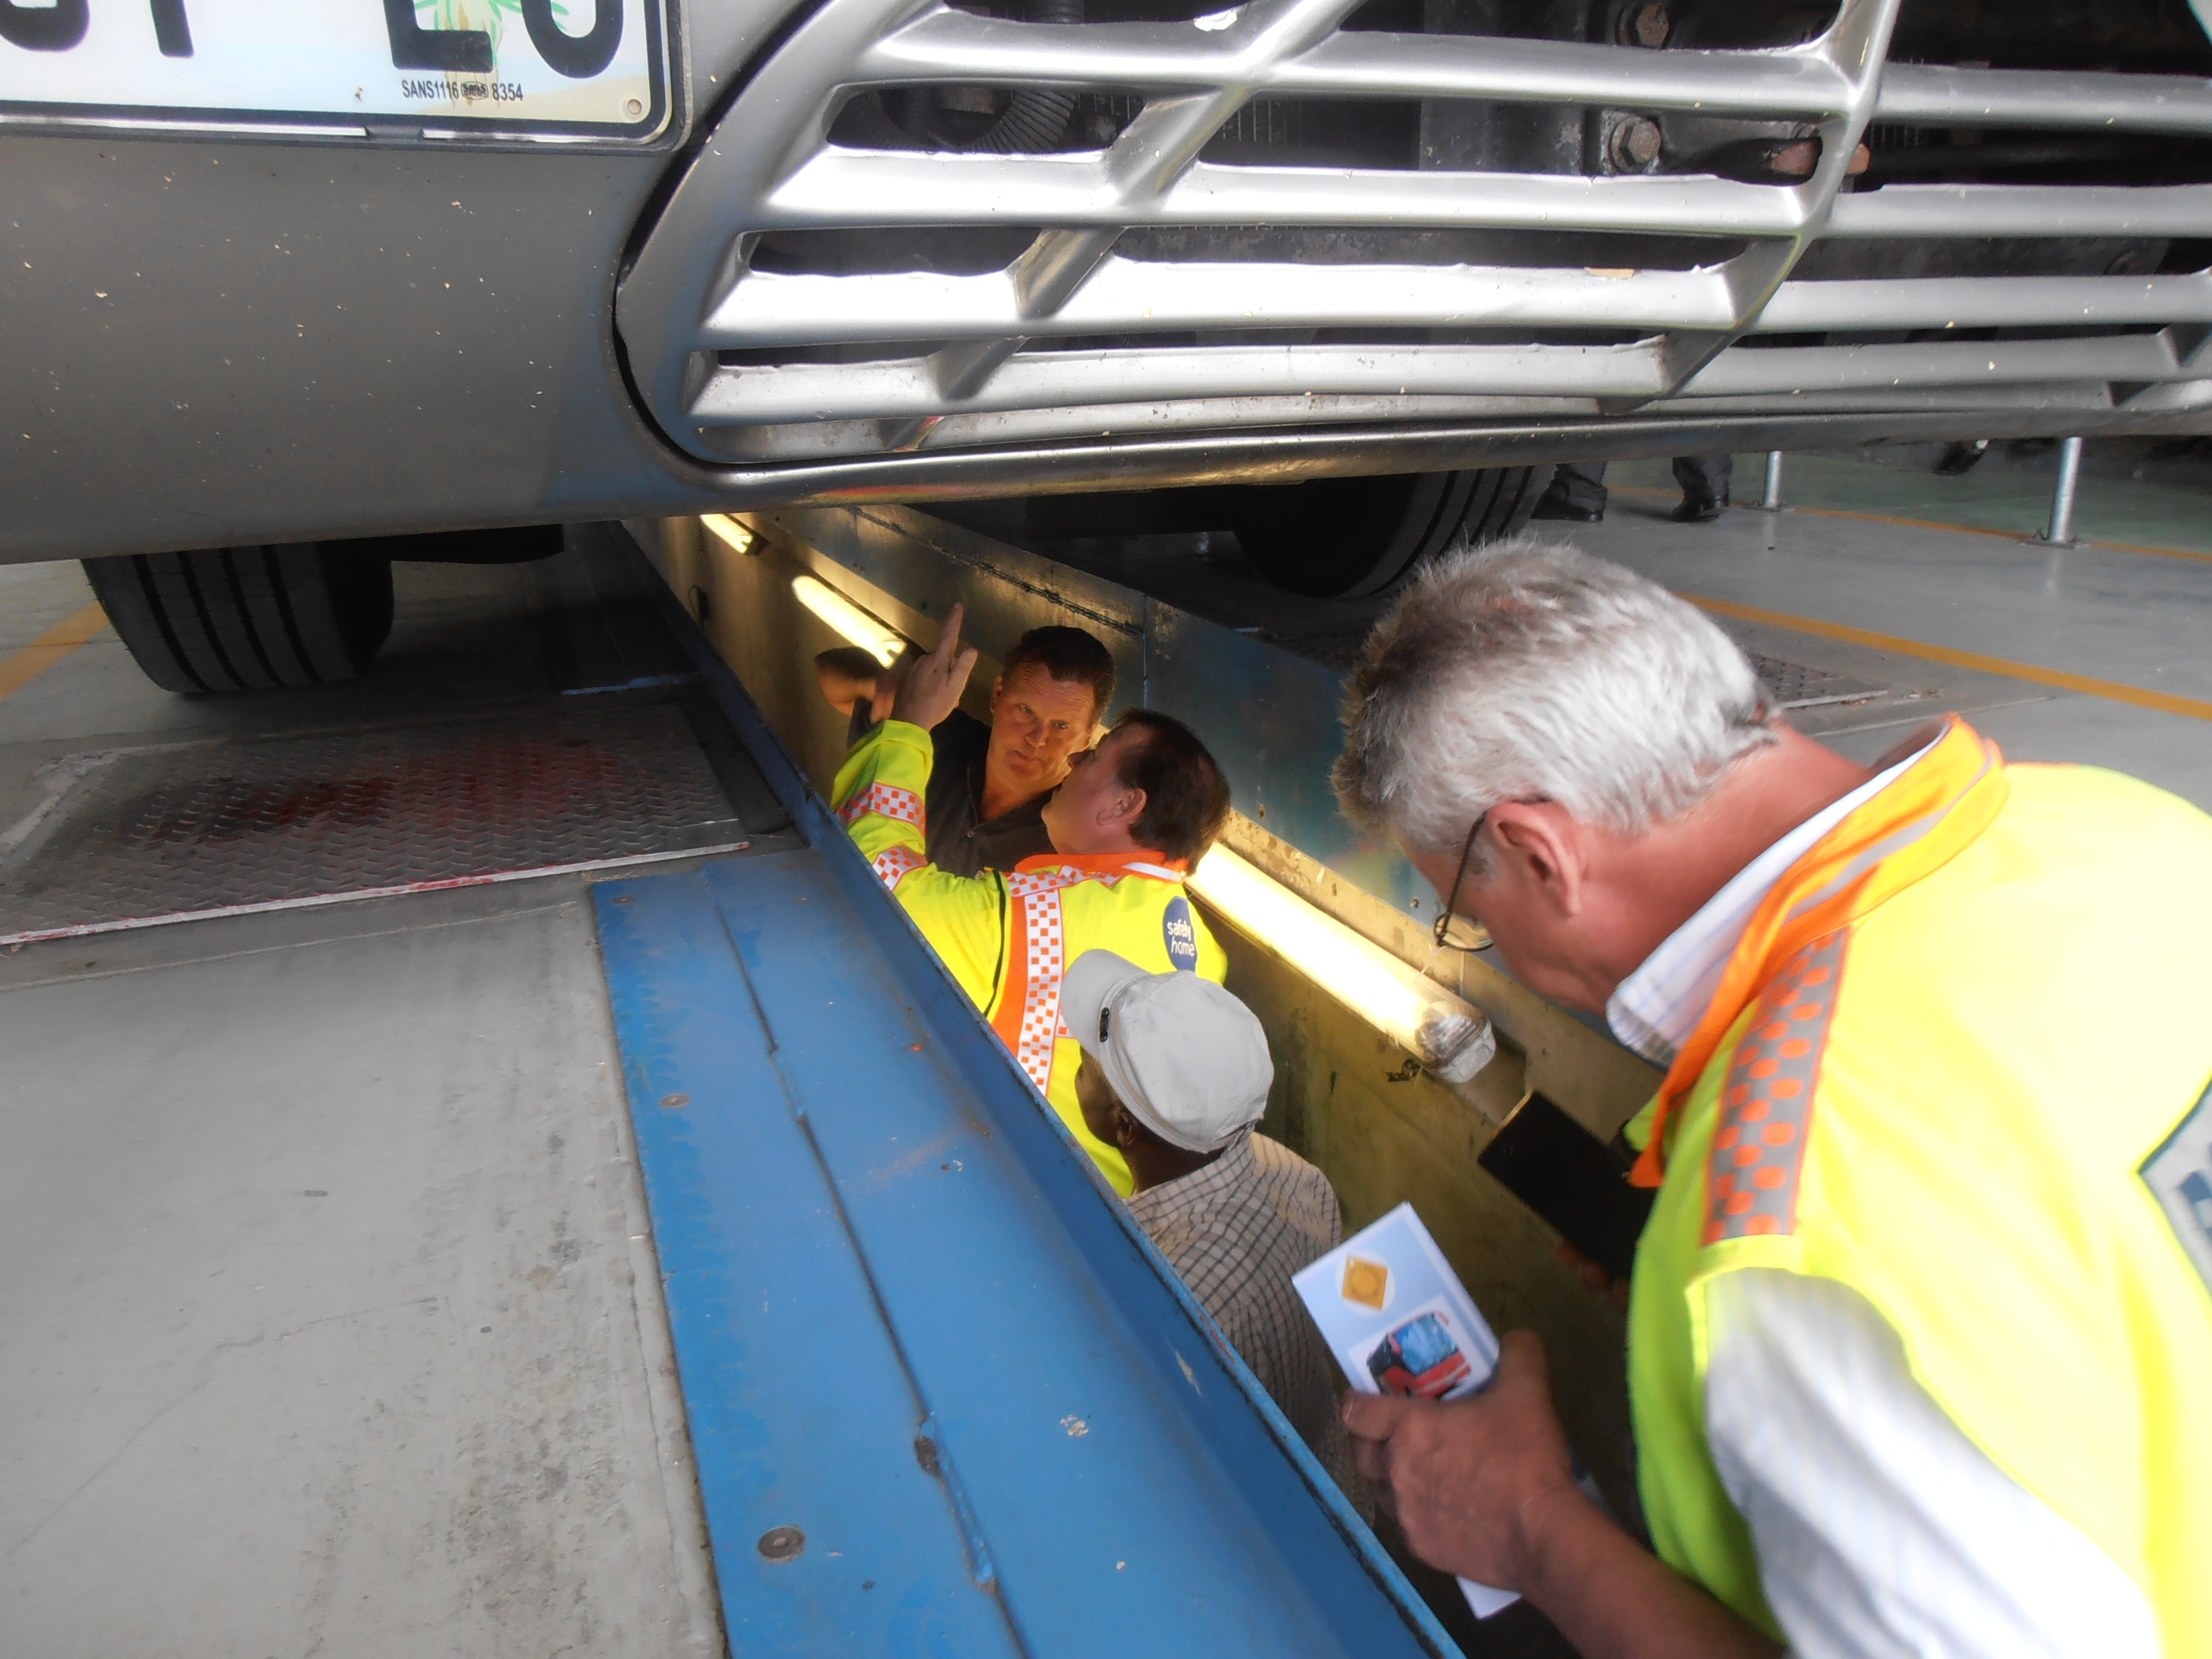 Minister Grant and traffic authorities inspect a bus at the Joe Gqabi Public Transport Interchange as part of the Sticker Project.